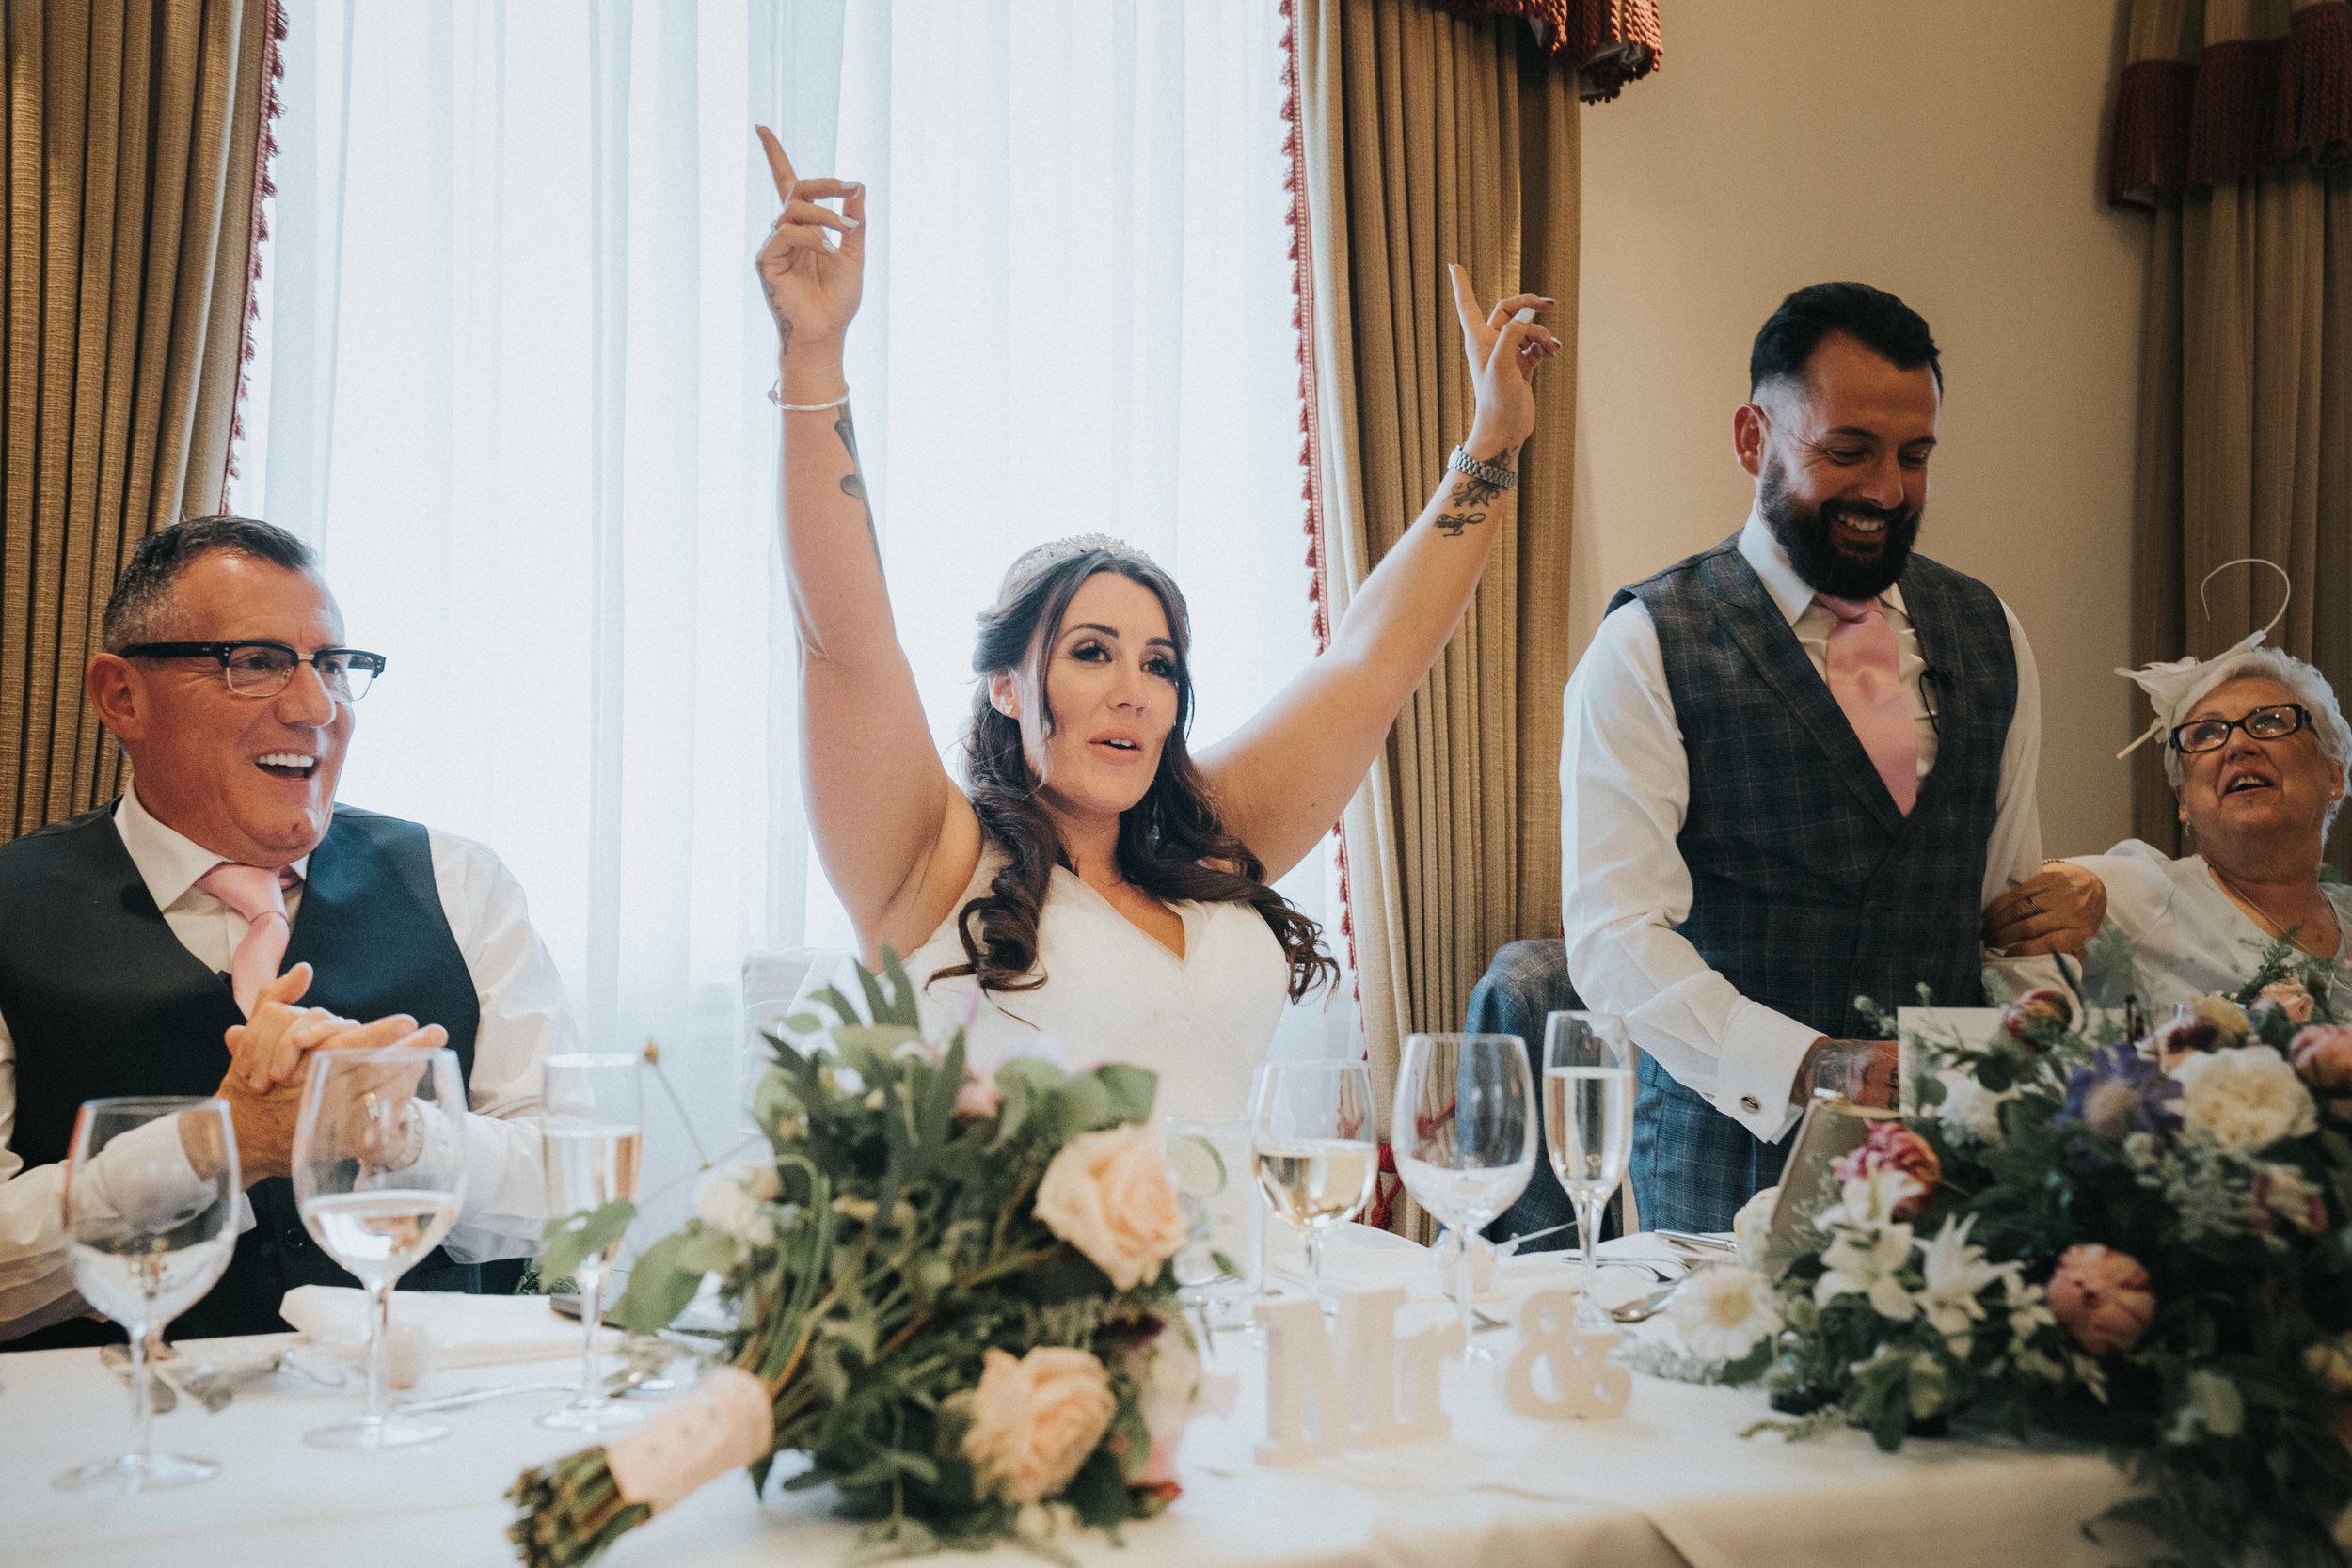 woburn-bedfordshire-london-wedding-photography-videography-40